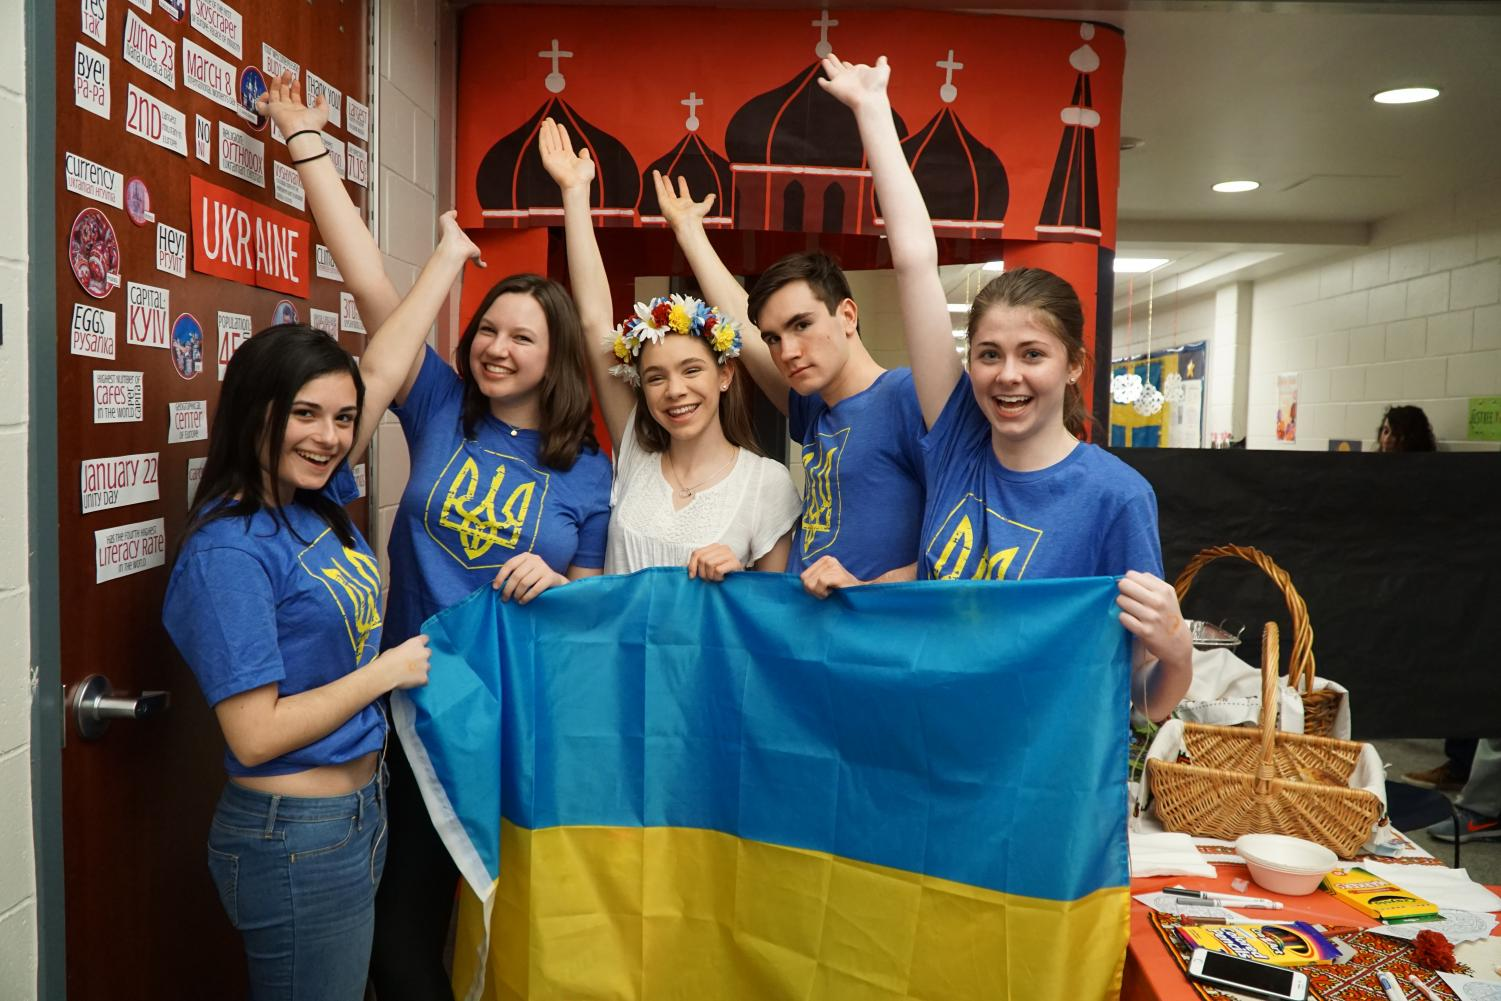 Ukraine took home first prize at this year's CCC festival.